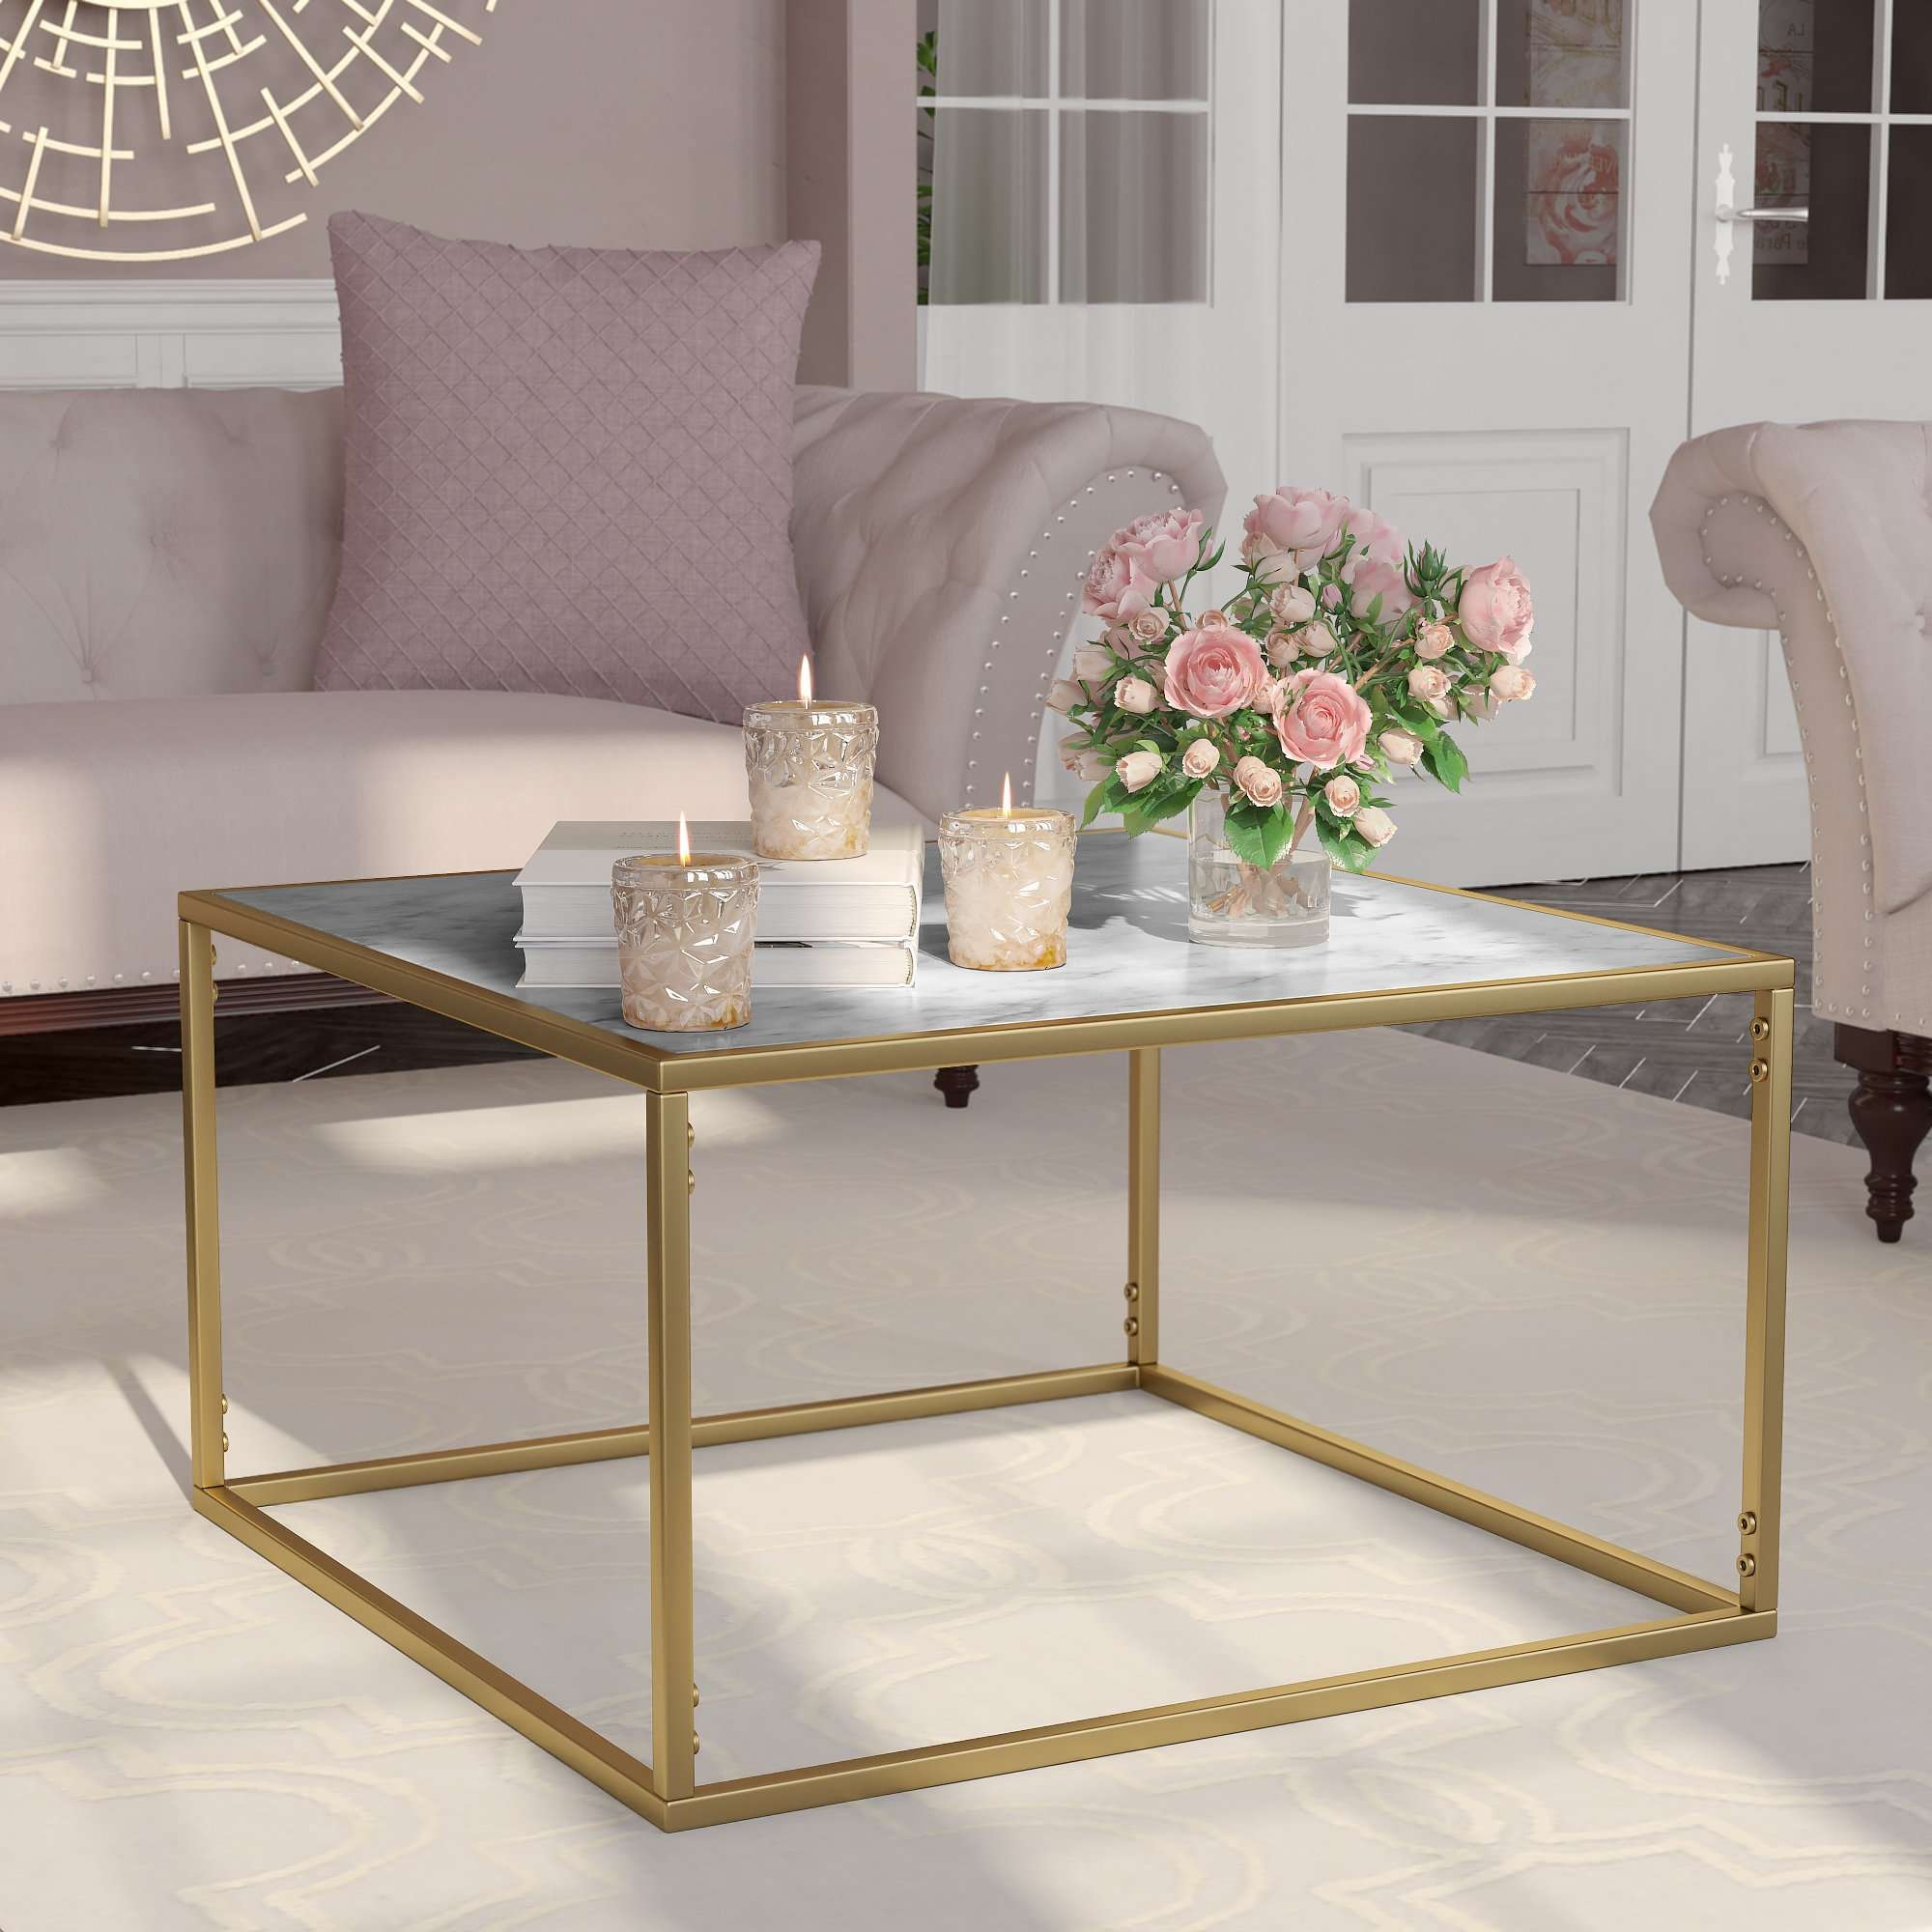 Marble/granite Top Coffee Tables You'll Love (View 8 of 20)